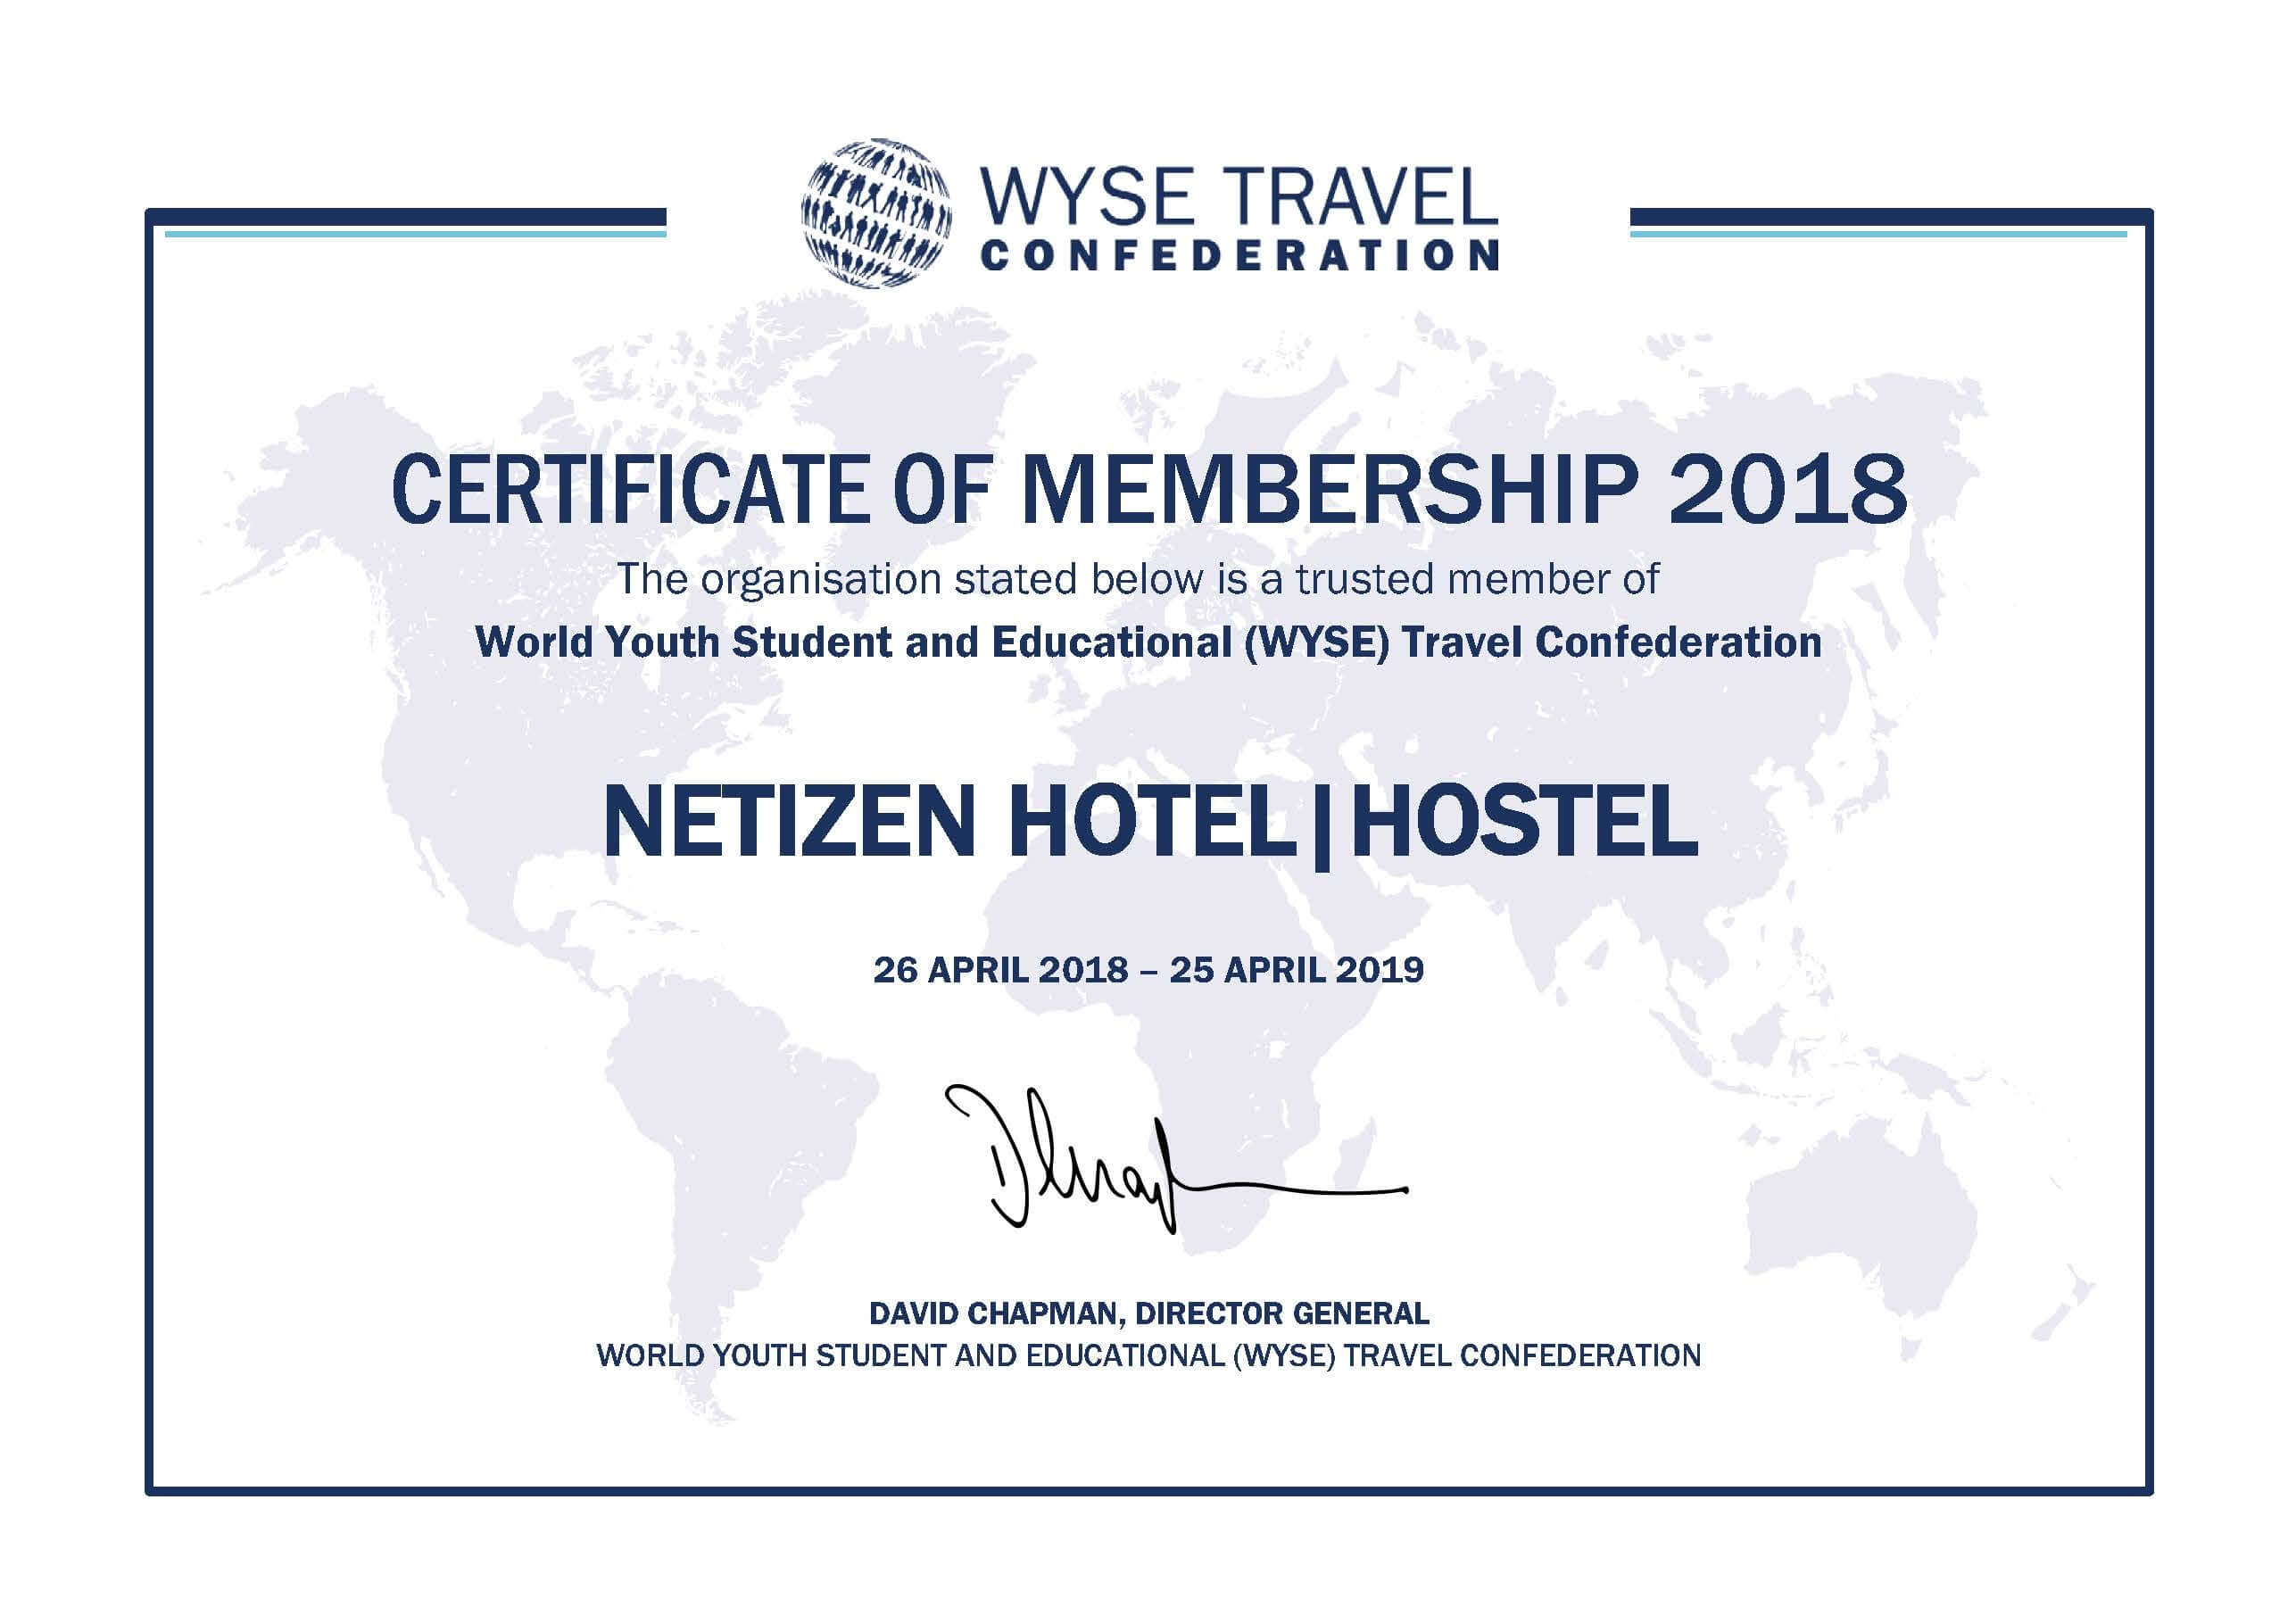 NETIZEN joined the international youth tourism organization WYSE travel confederation